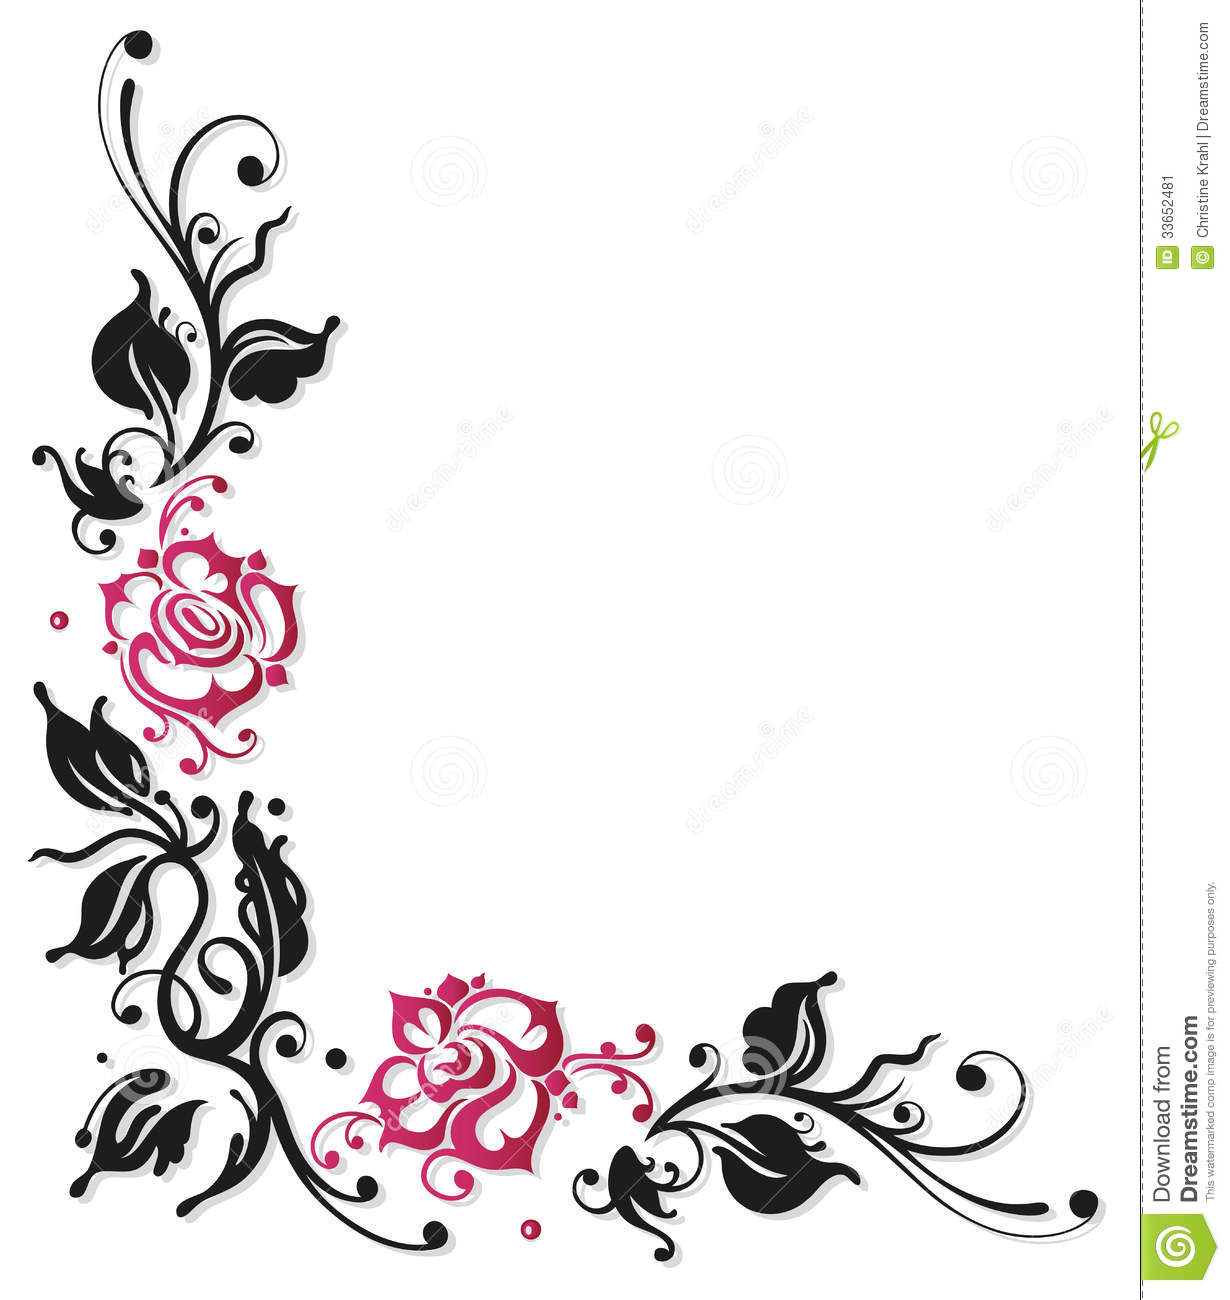 Spring Flowers Borders Clipart Free Download Best Spring Flowers